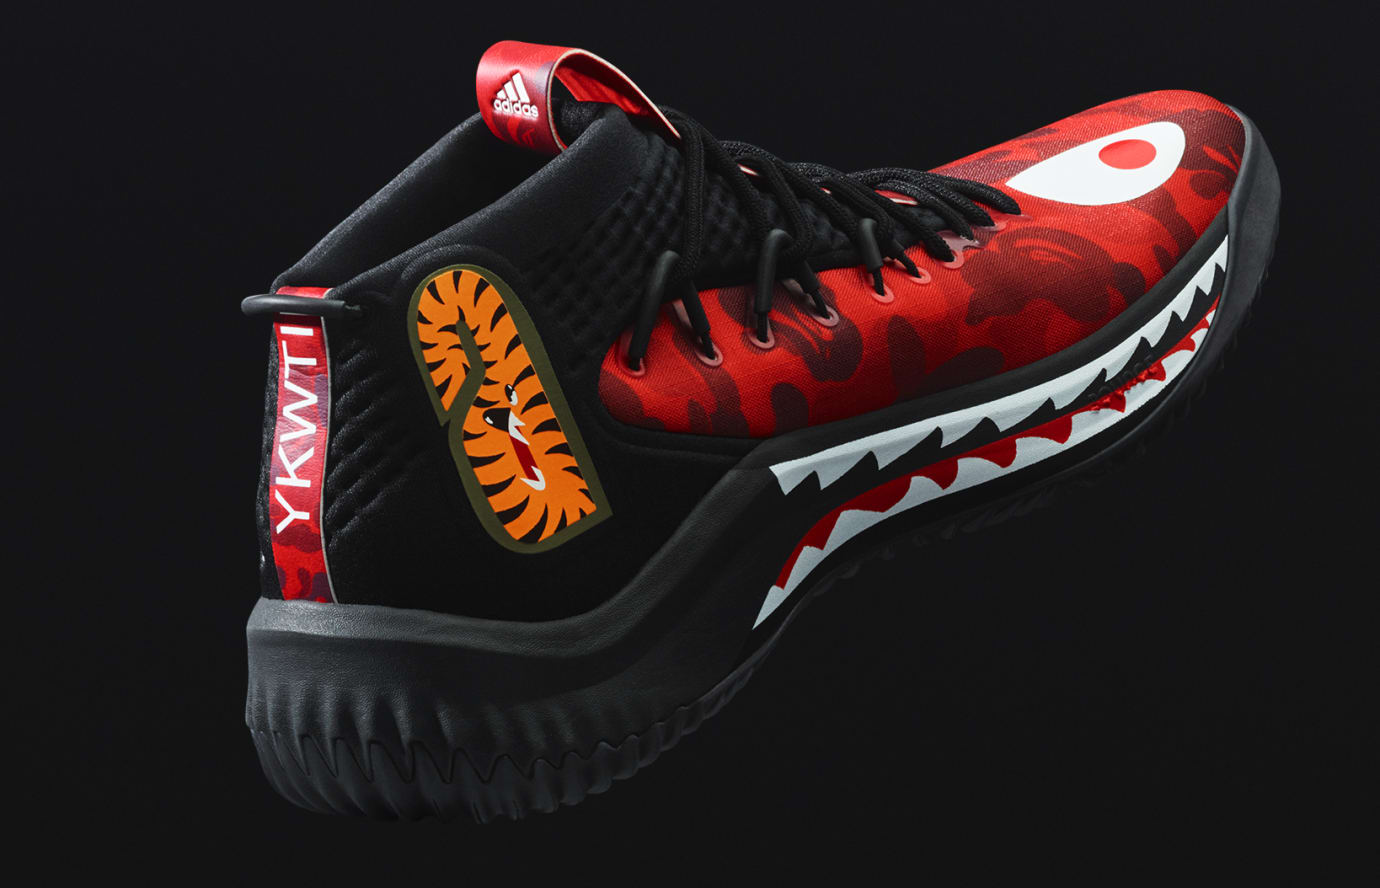 f0b48a5de69f Adidas Dame 4 x Bape Releasing in Red on Feb. 16